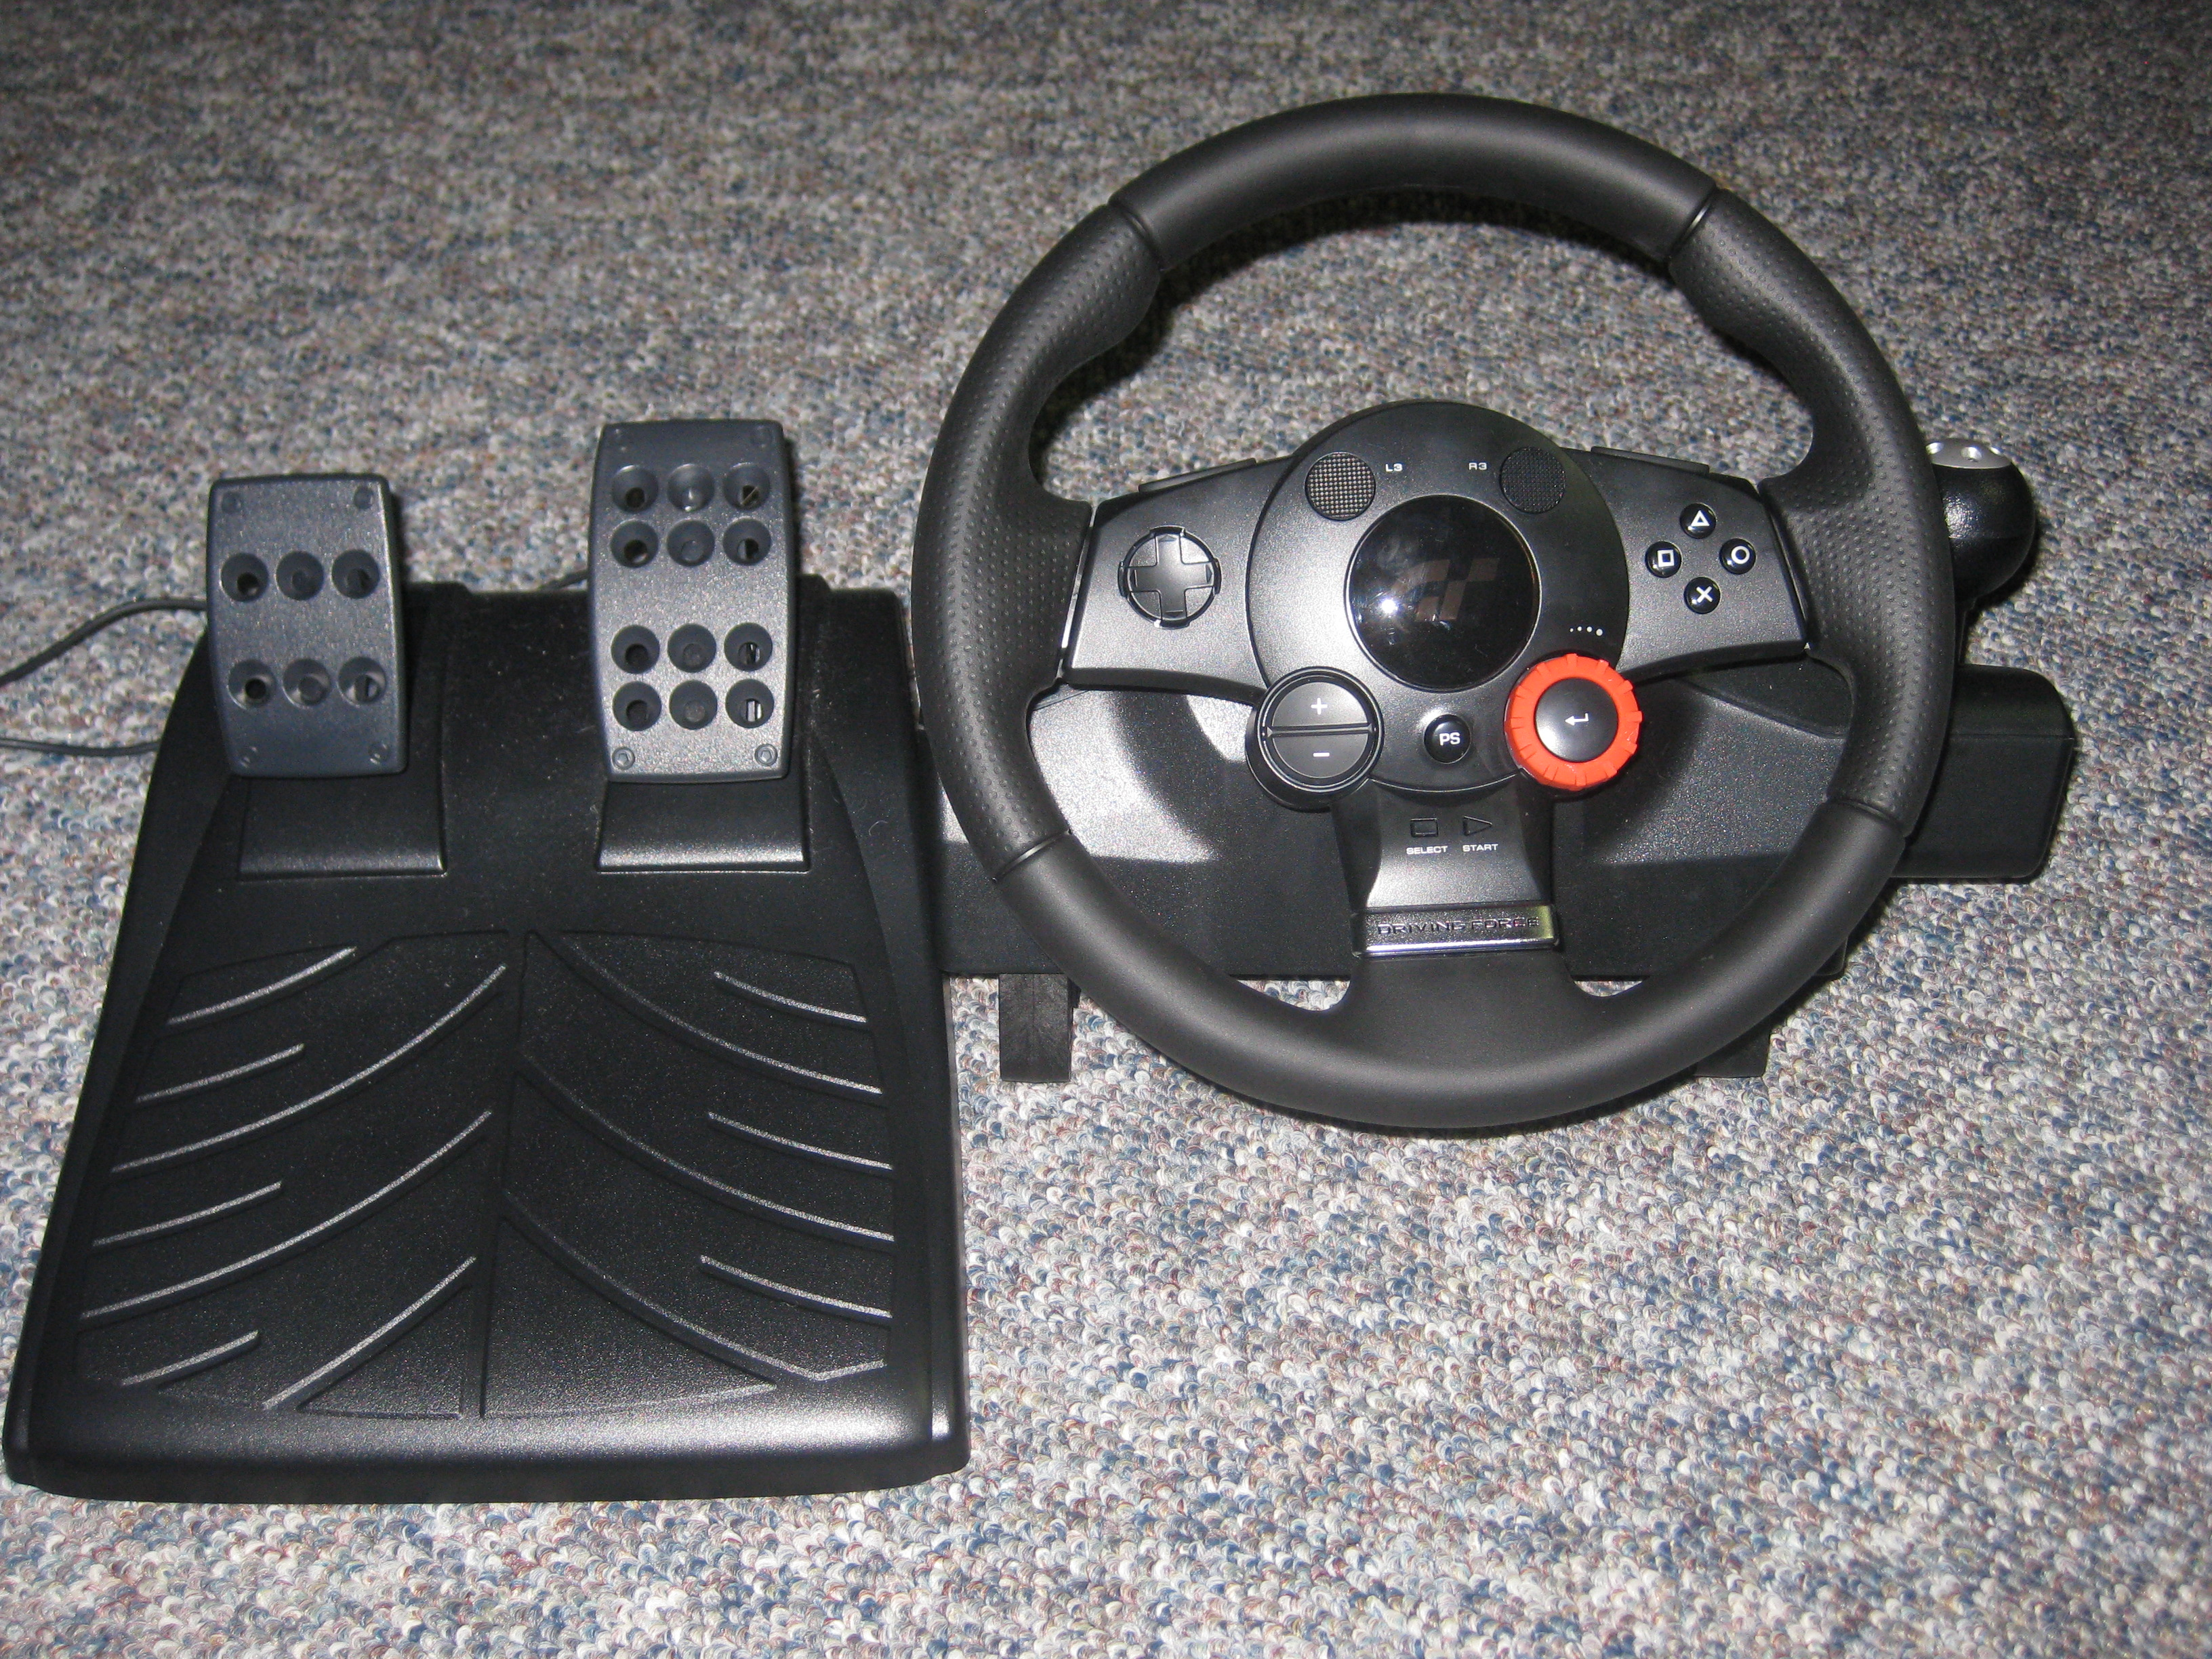 How To Use A Ps Controller For City Car Driving